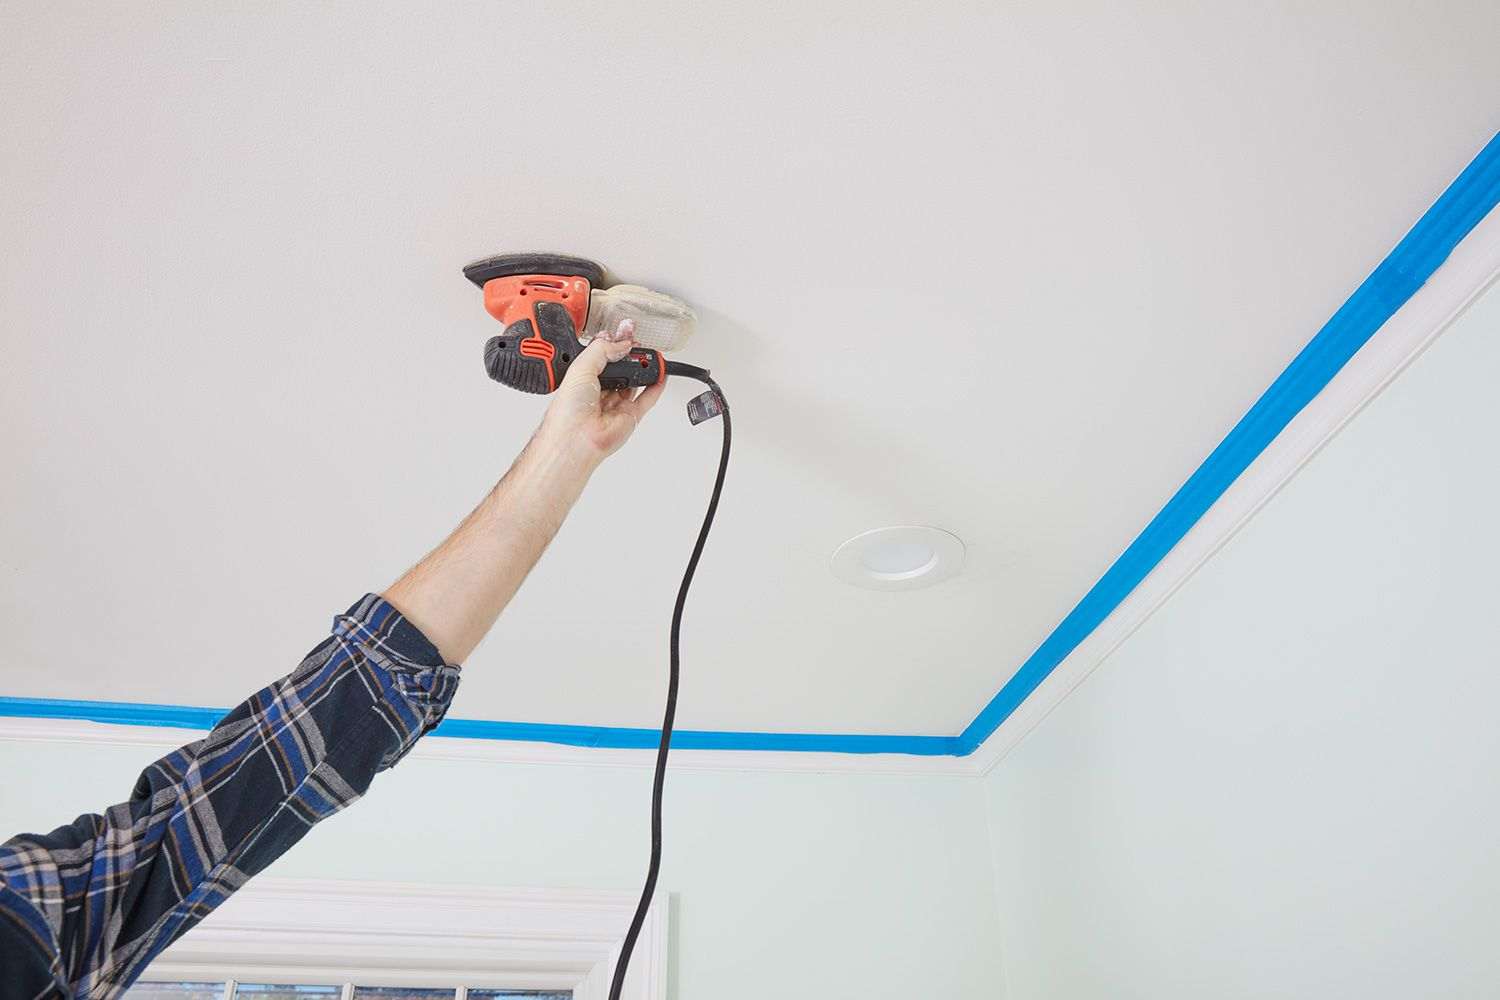 Prep ceiling by sanding any rough spots